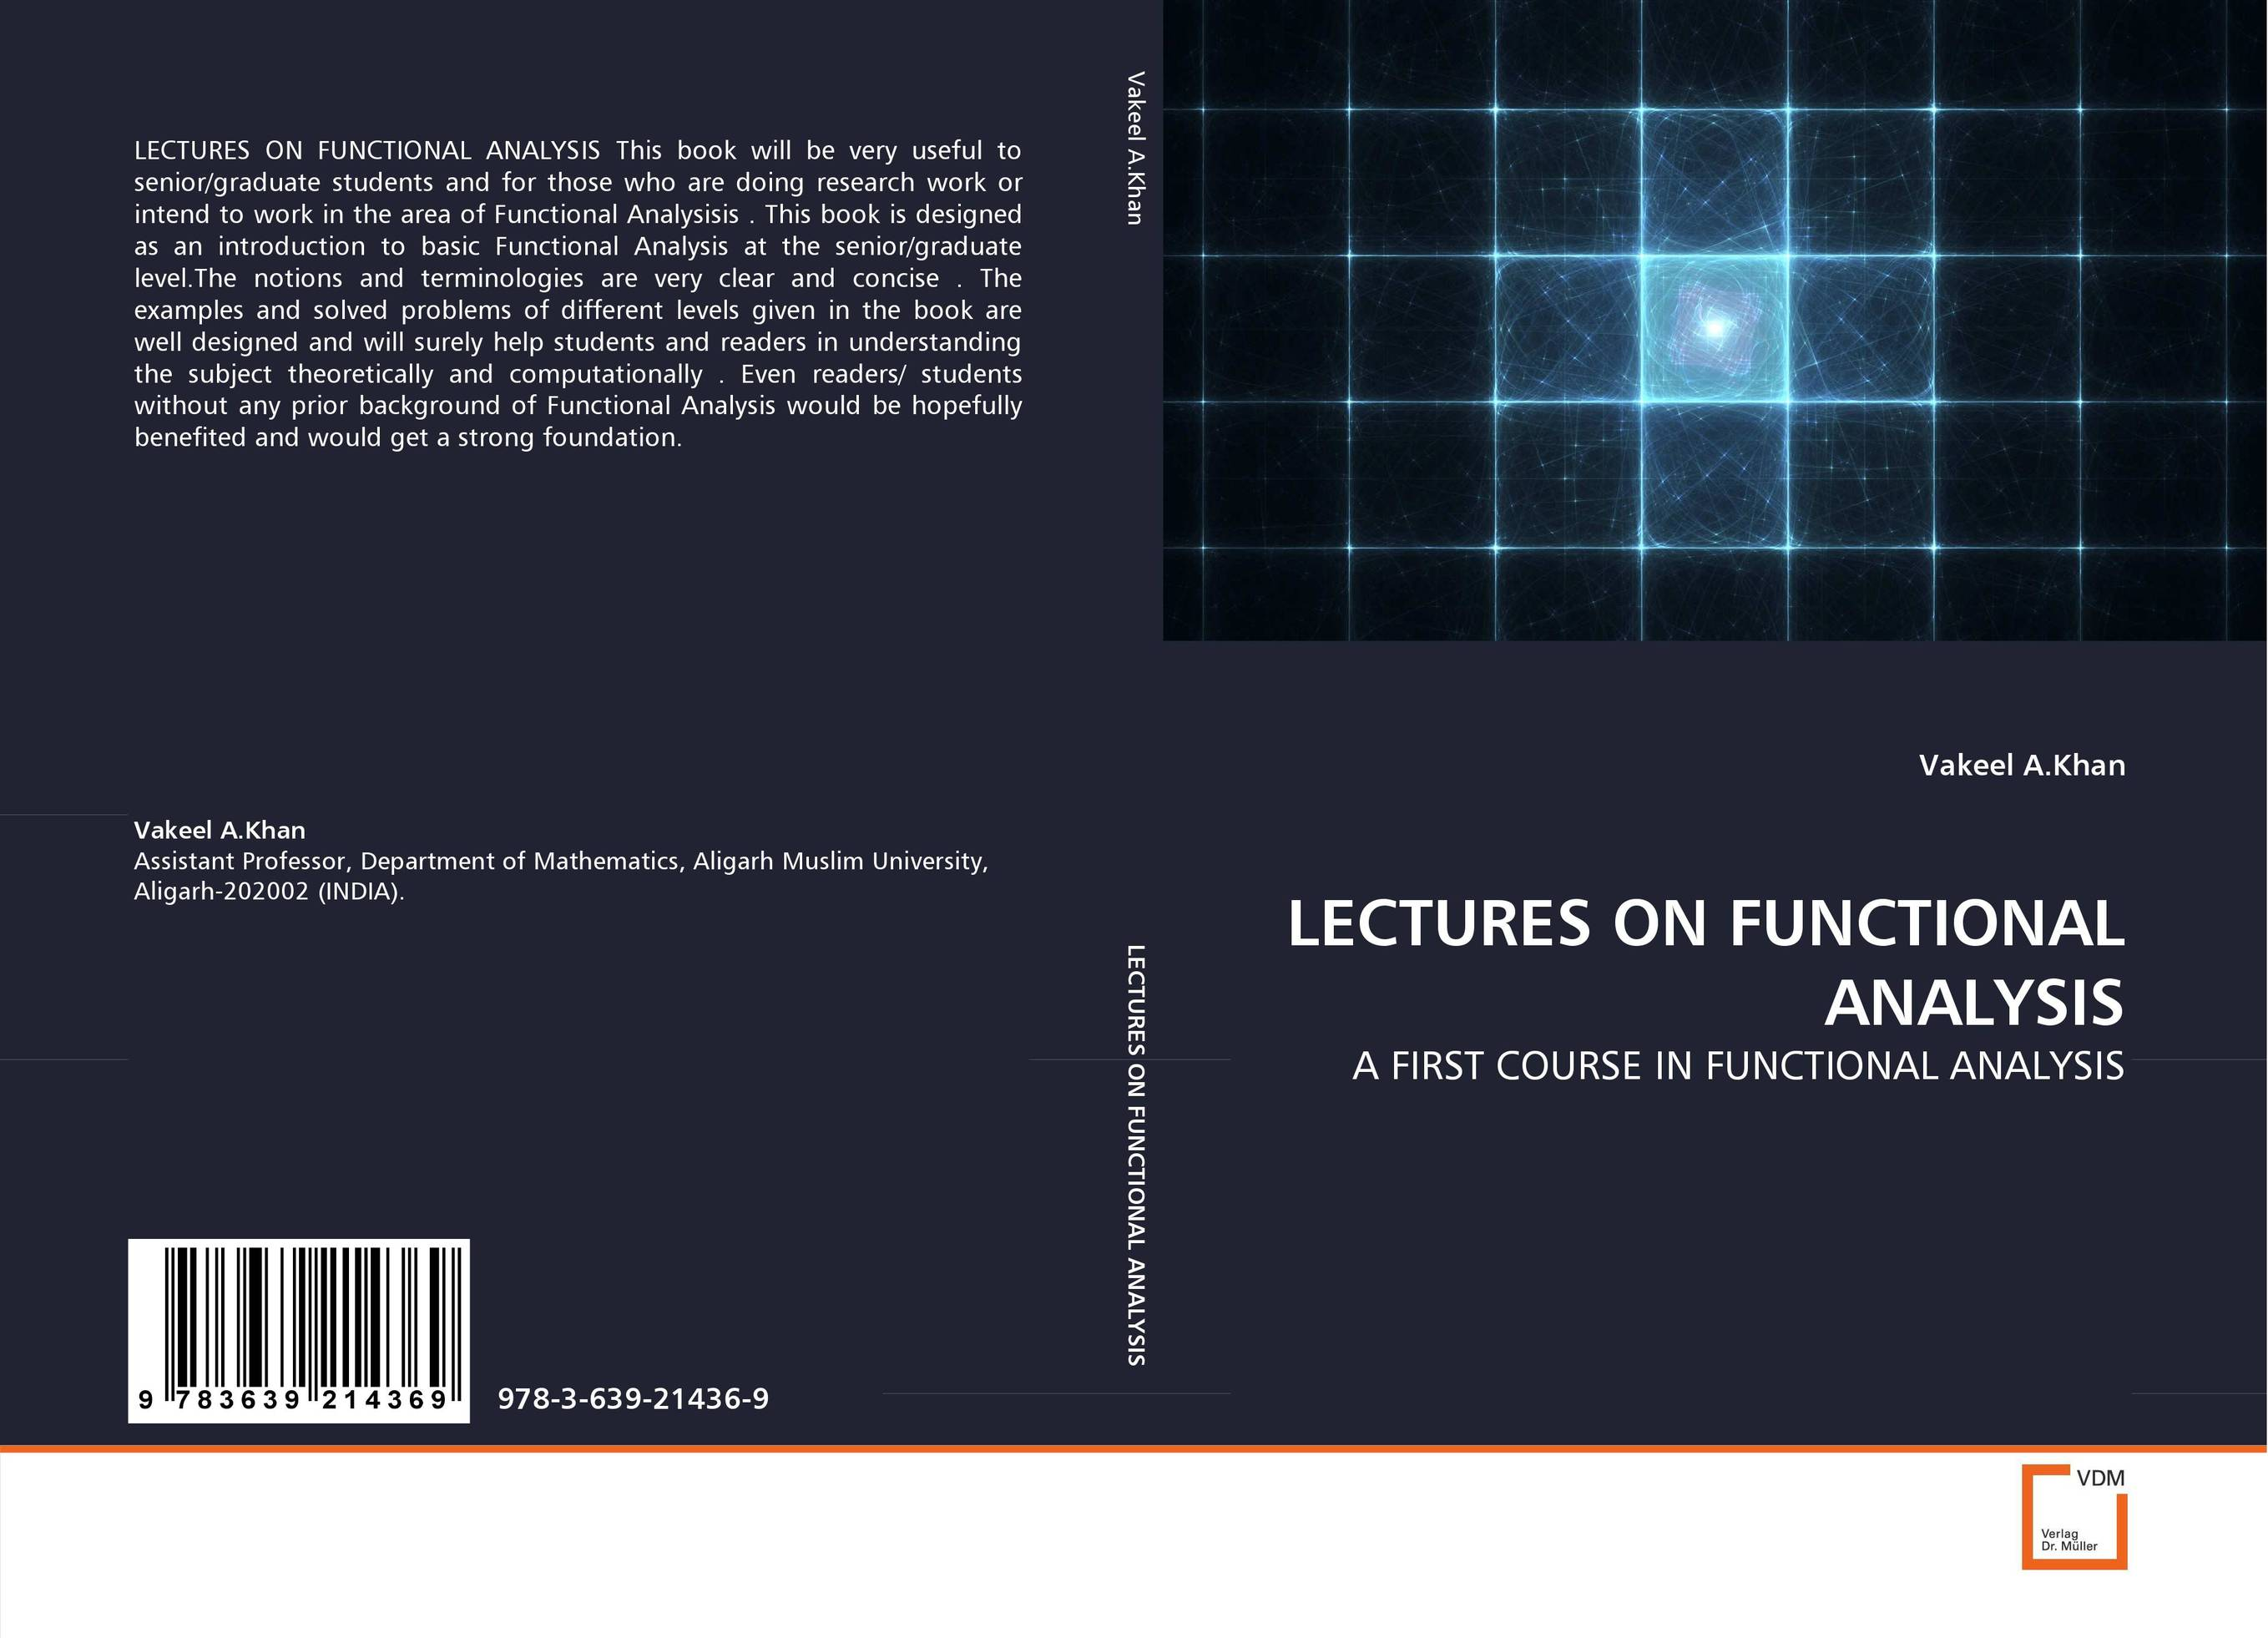 LECTURES ON FUNCTIONAL ANALYSIS lectures on functional analysis